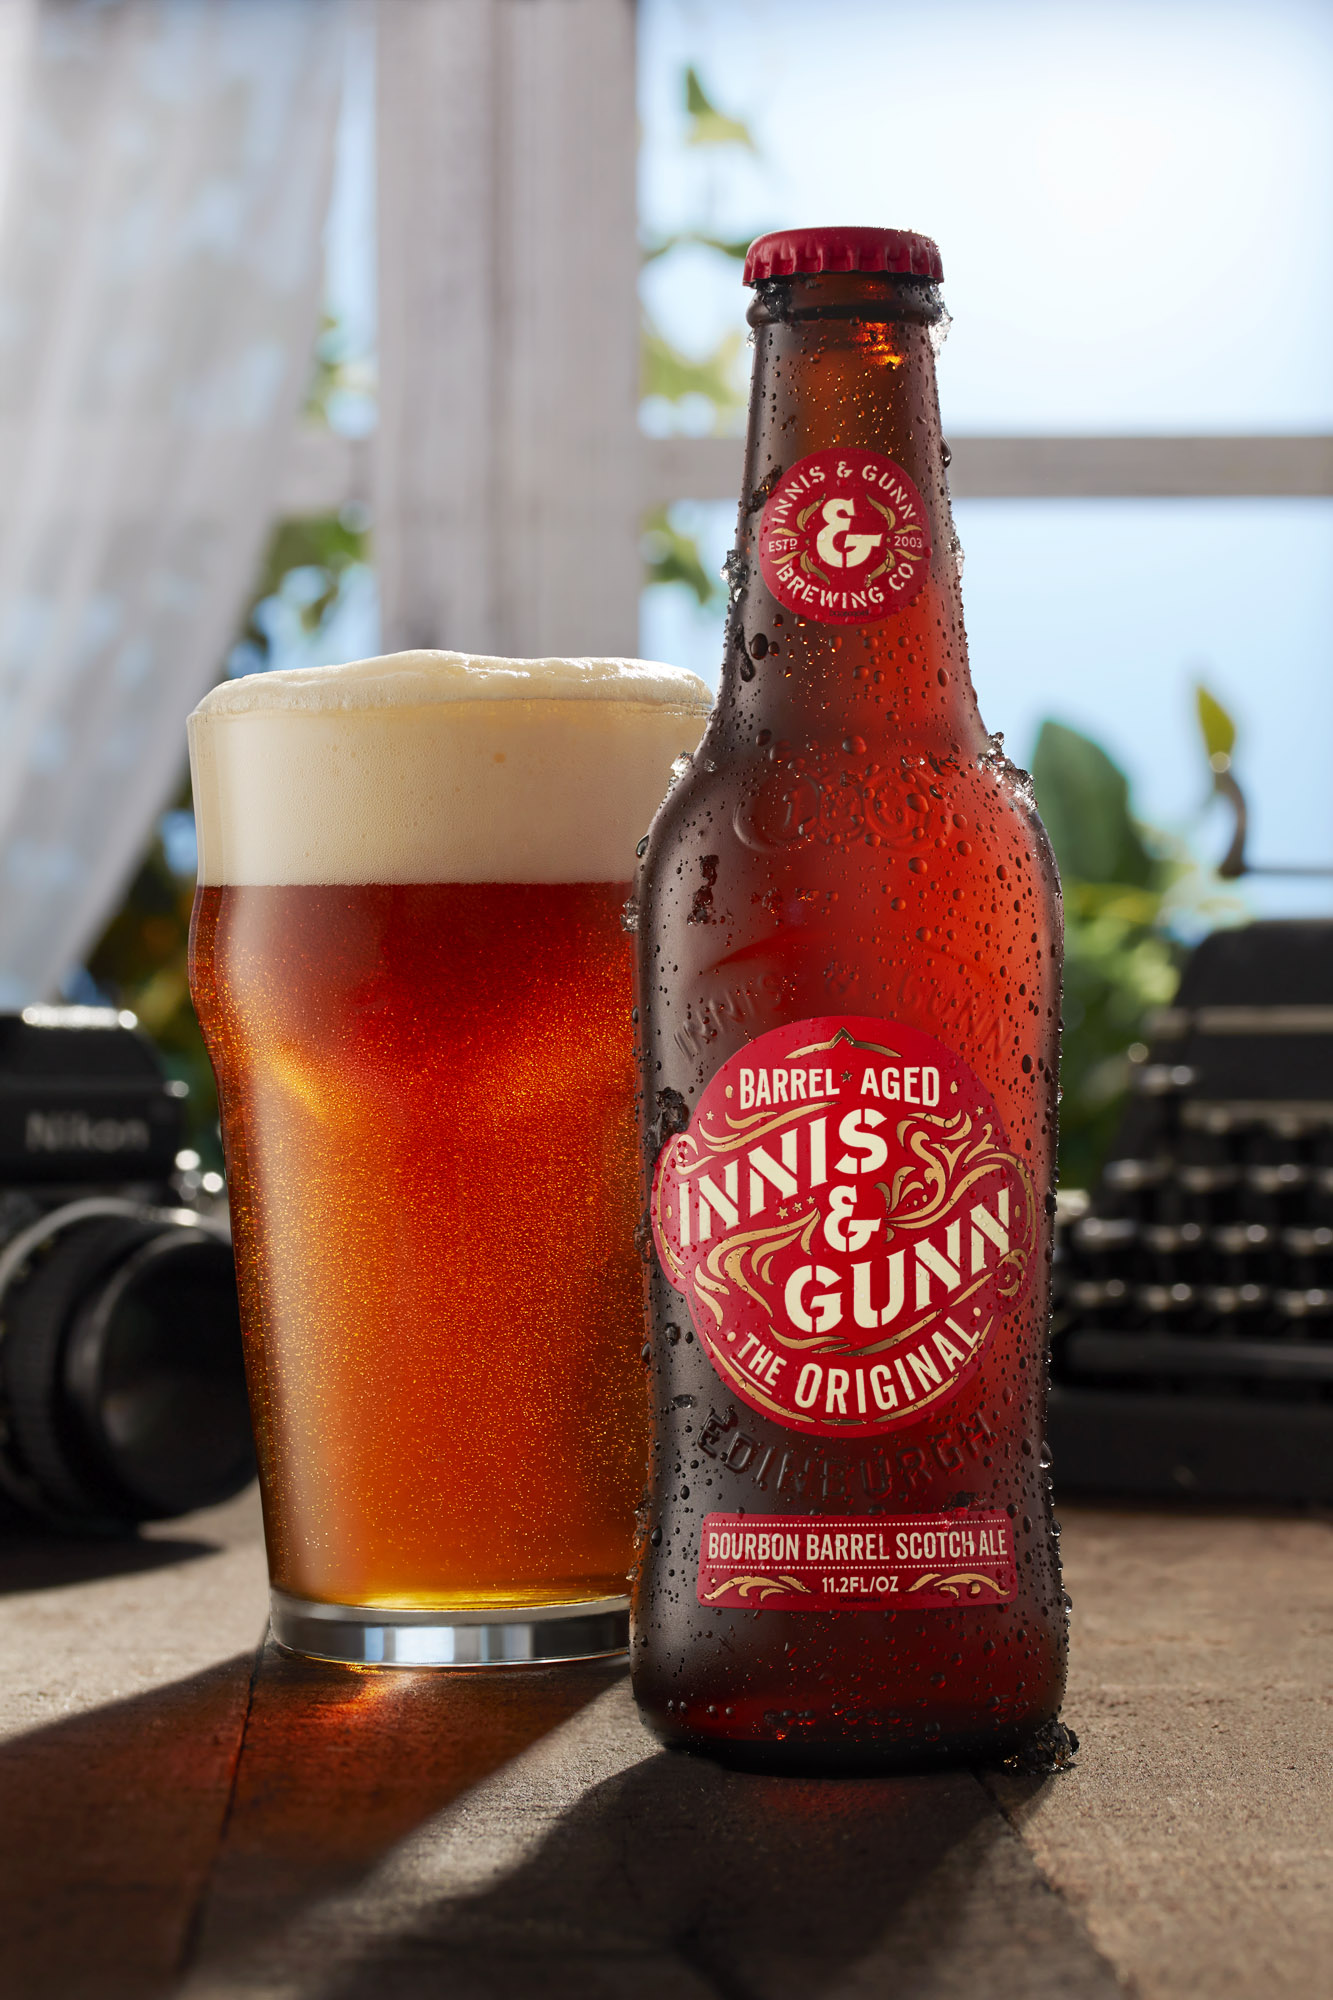 Fielder Williams Strain fiwist photography Nashville Product Photographer sunny window innis gunn beer.jpg